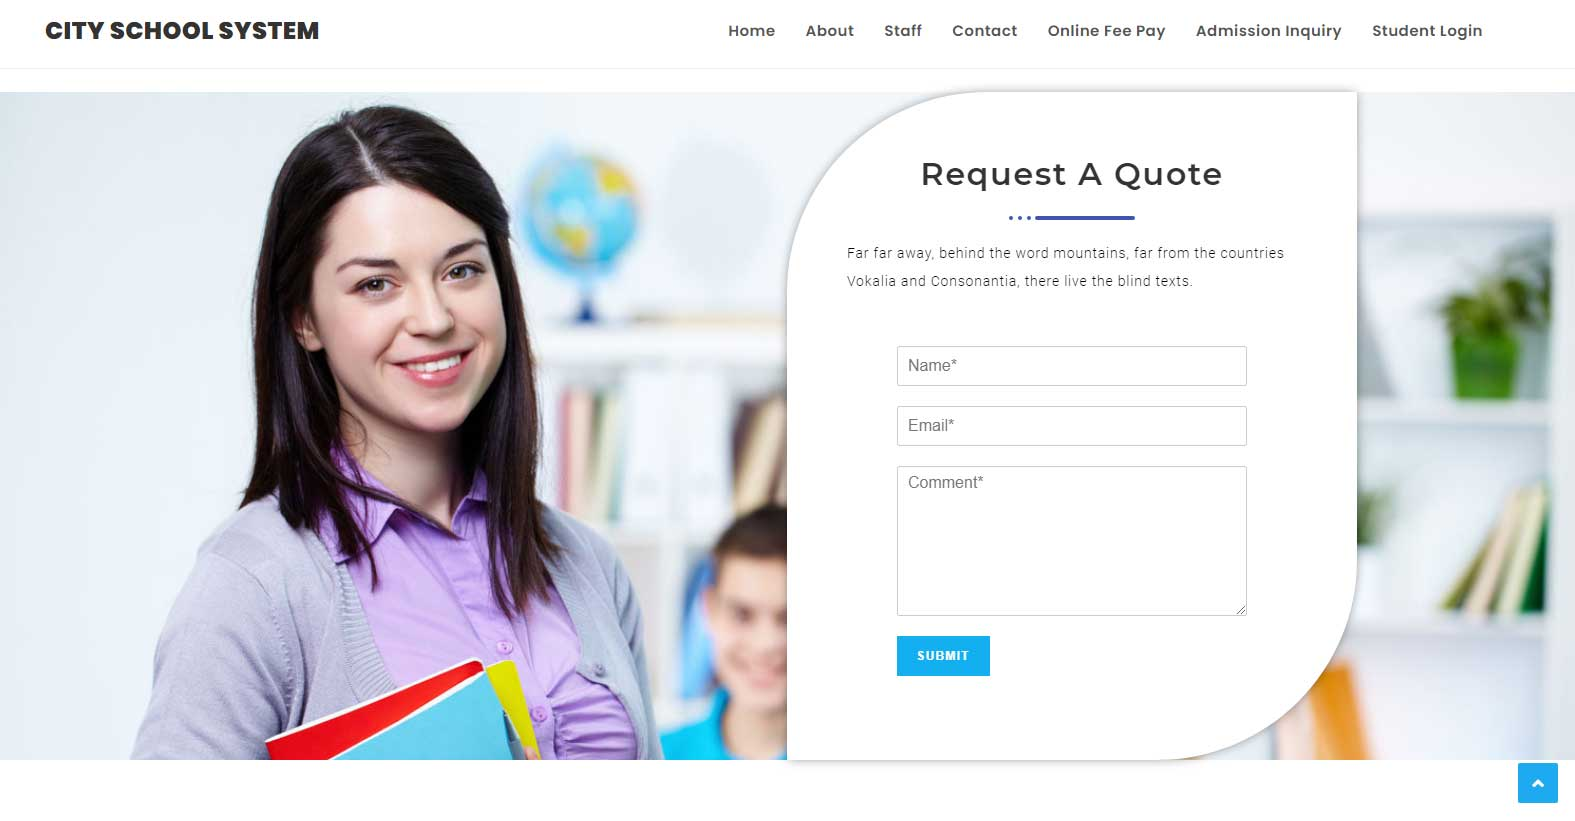 City-School-System-request-a-quote